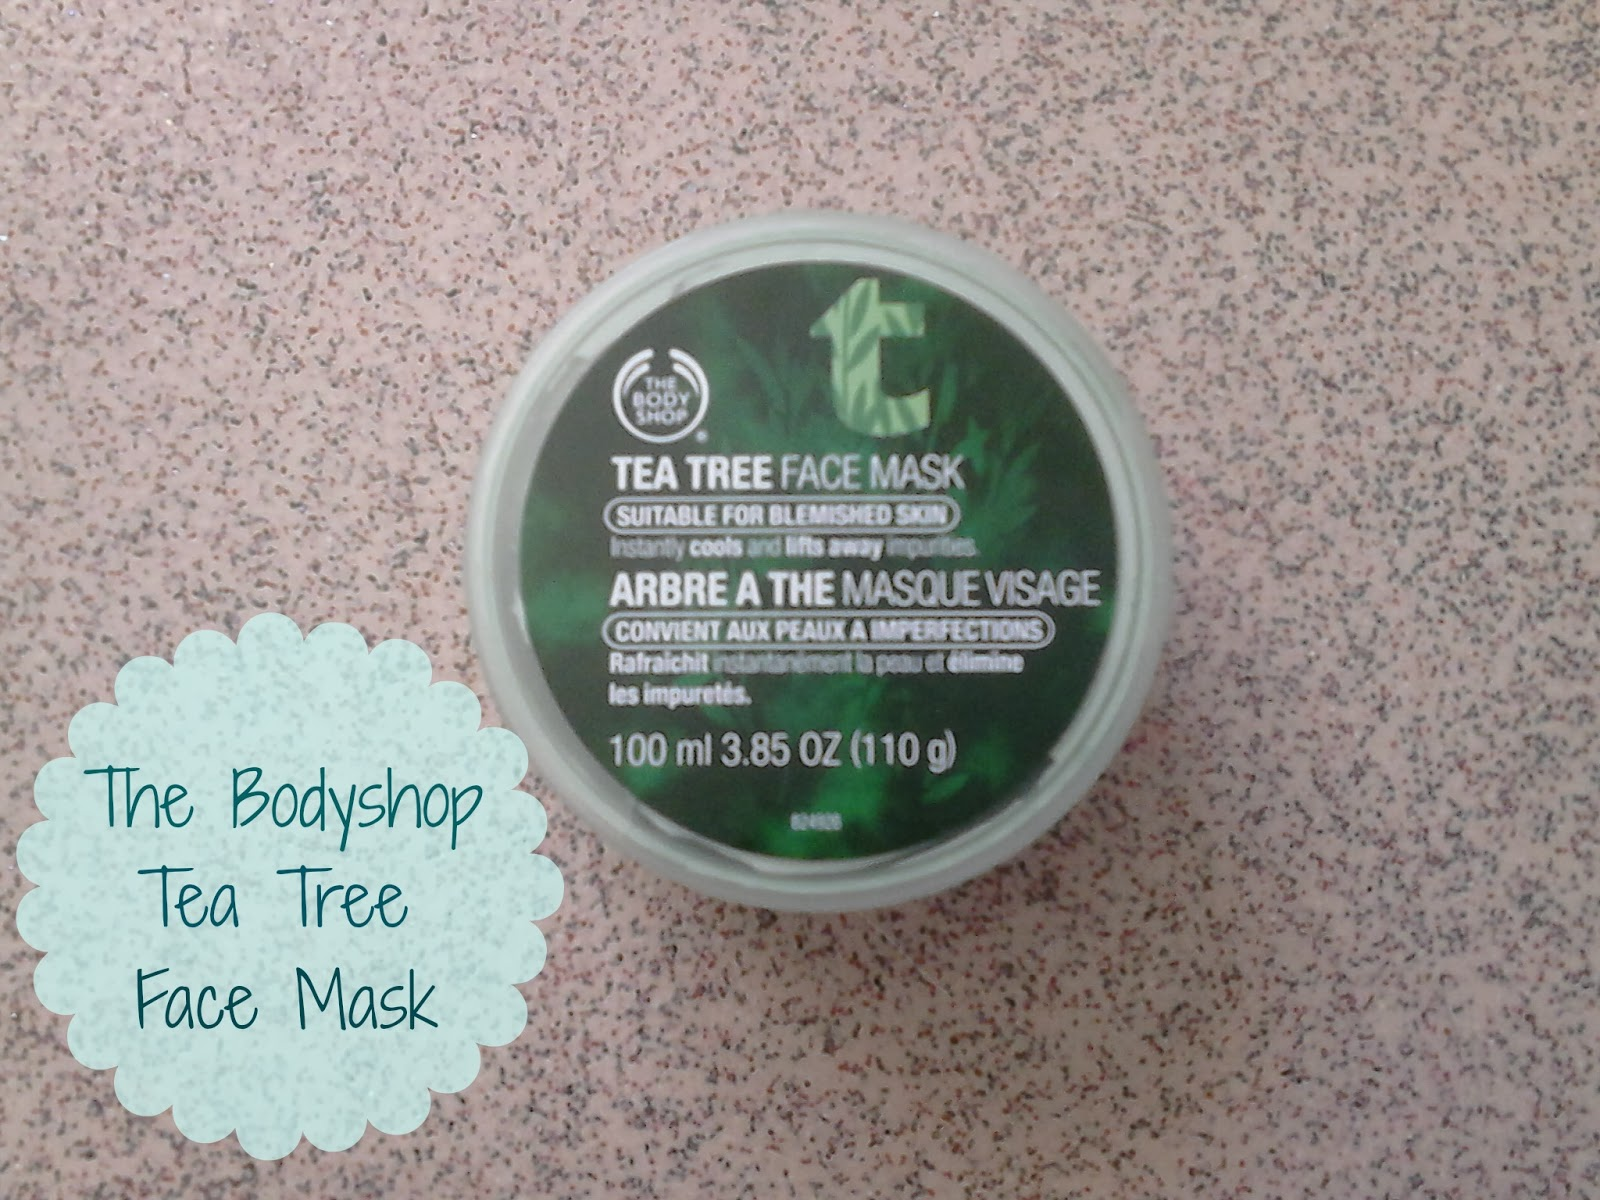 The Bodyshop Tea Tree Face Mask